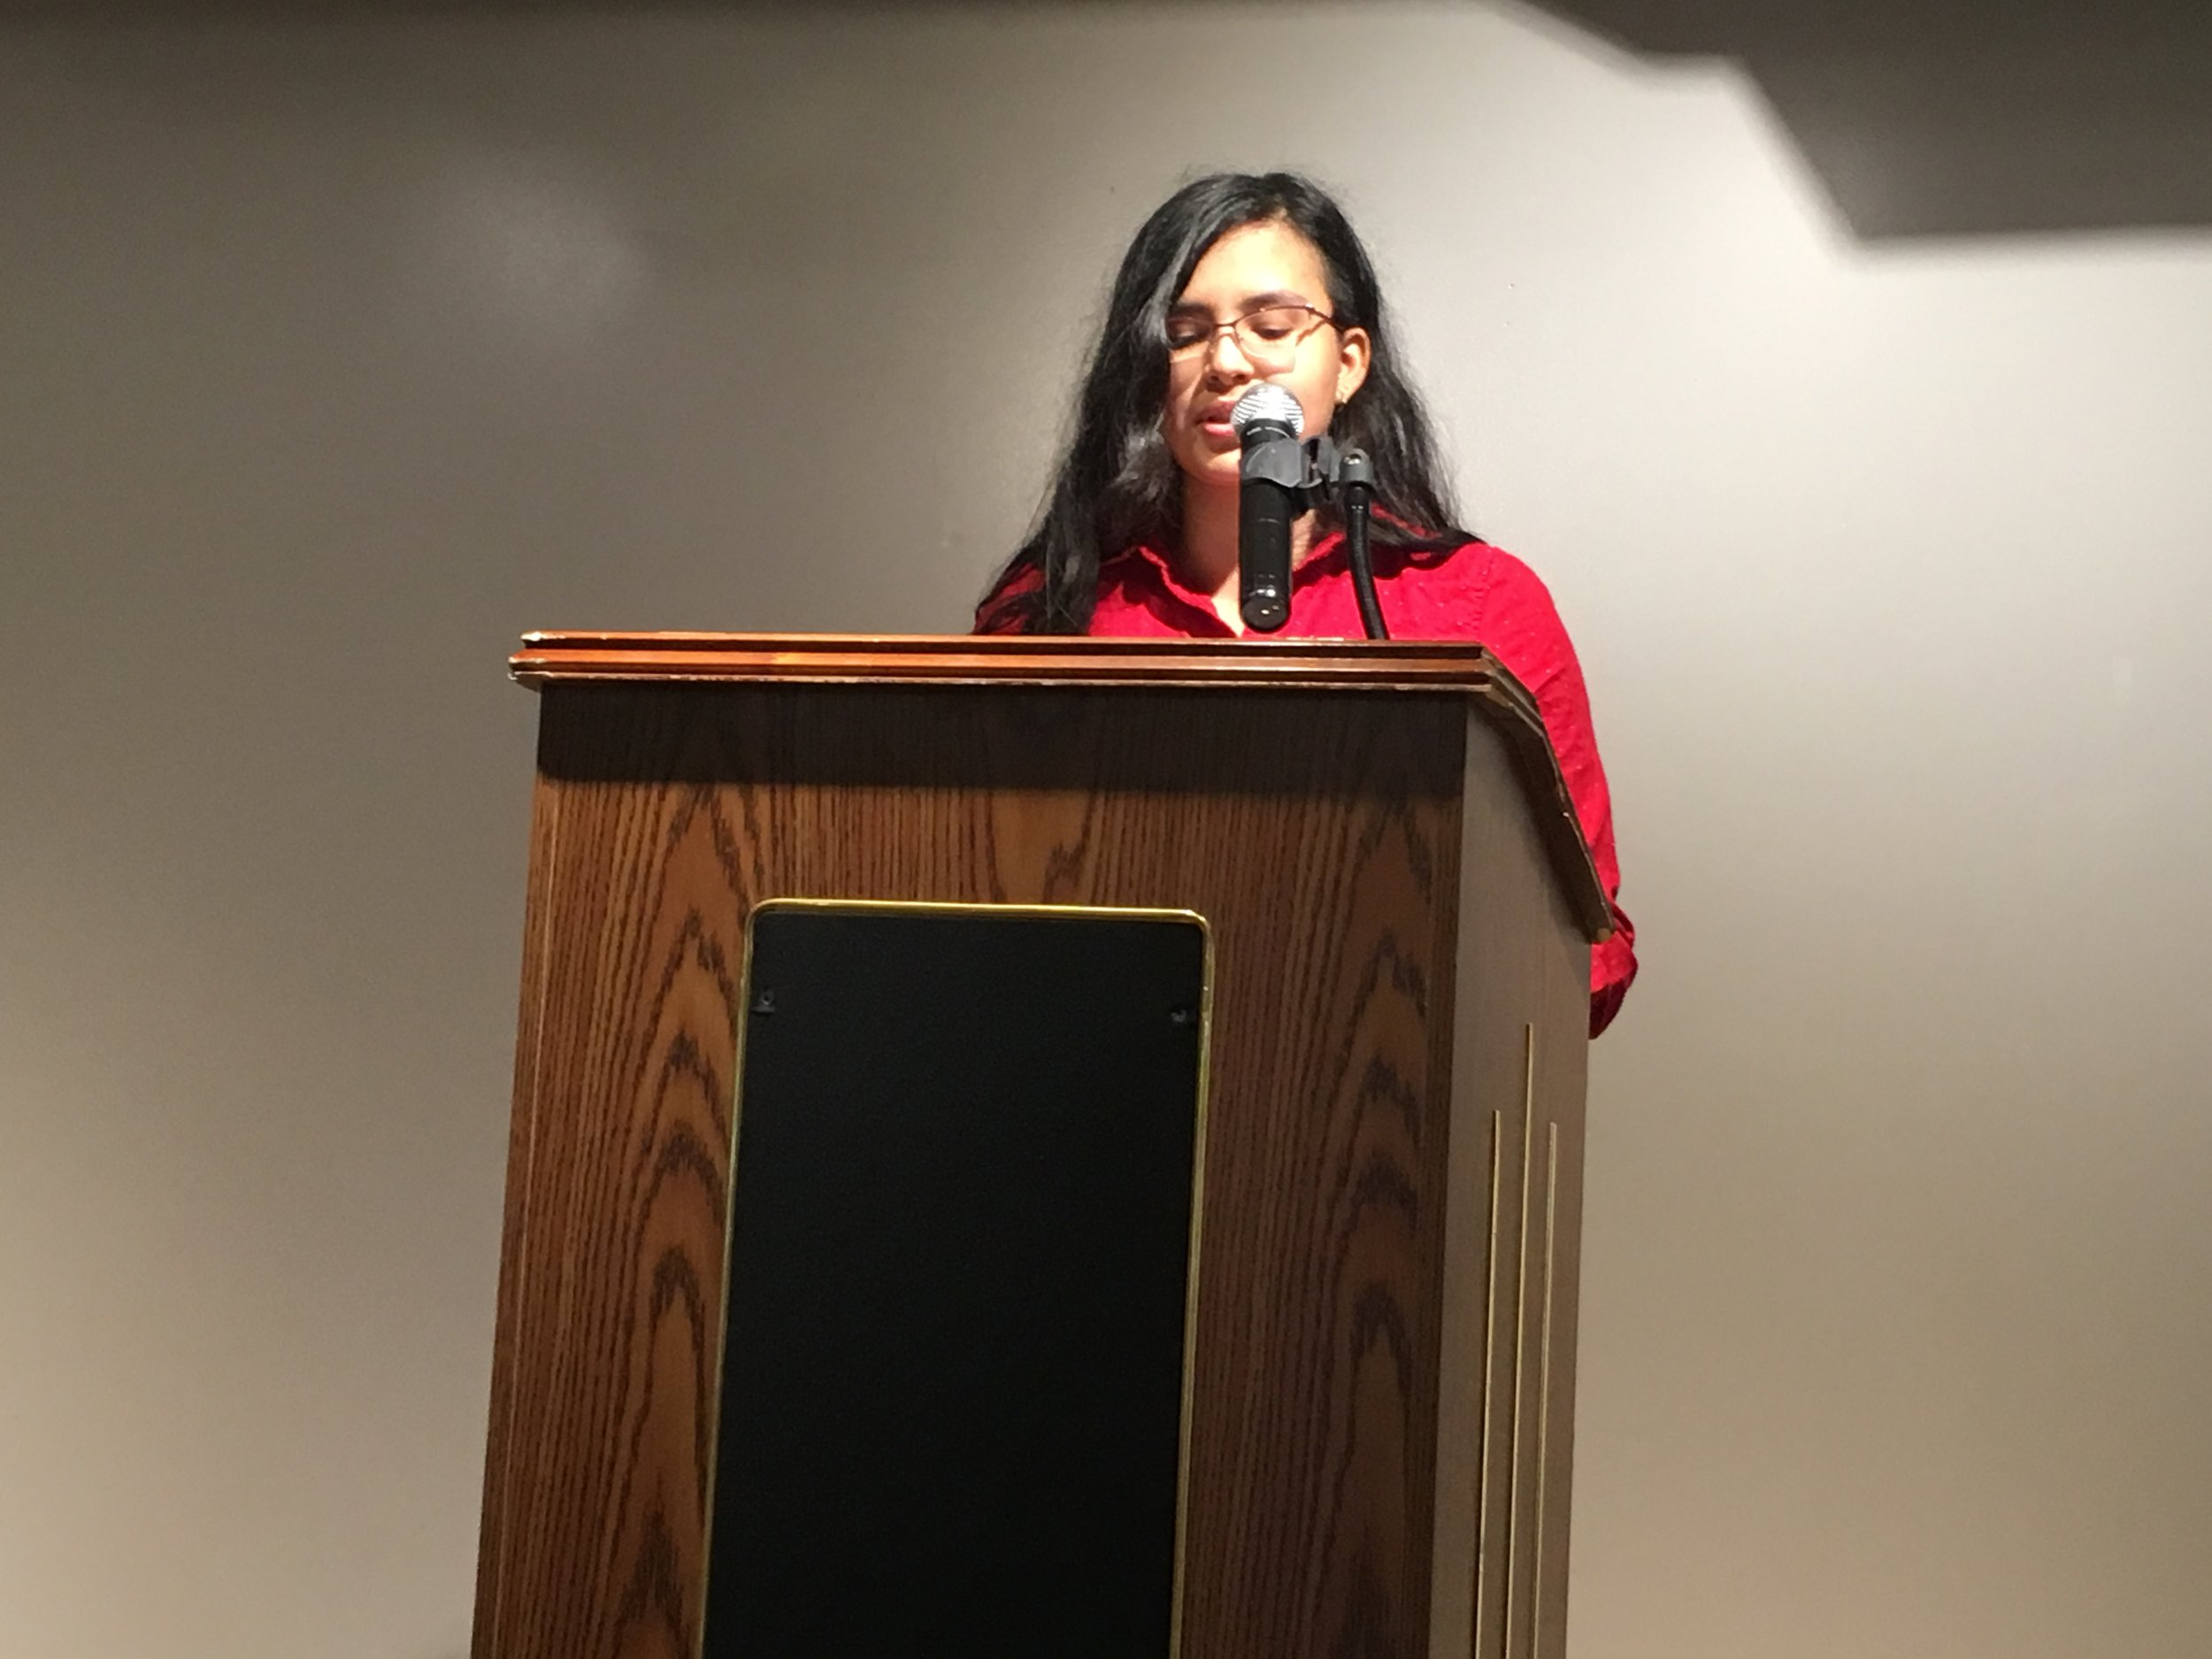 Daniela Morales reads at the Gibbs-Morrison Cultural Center.